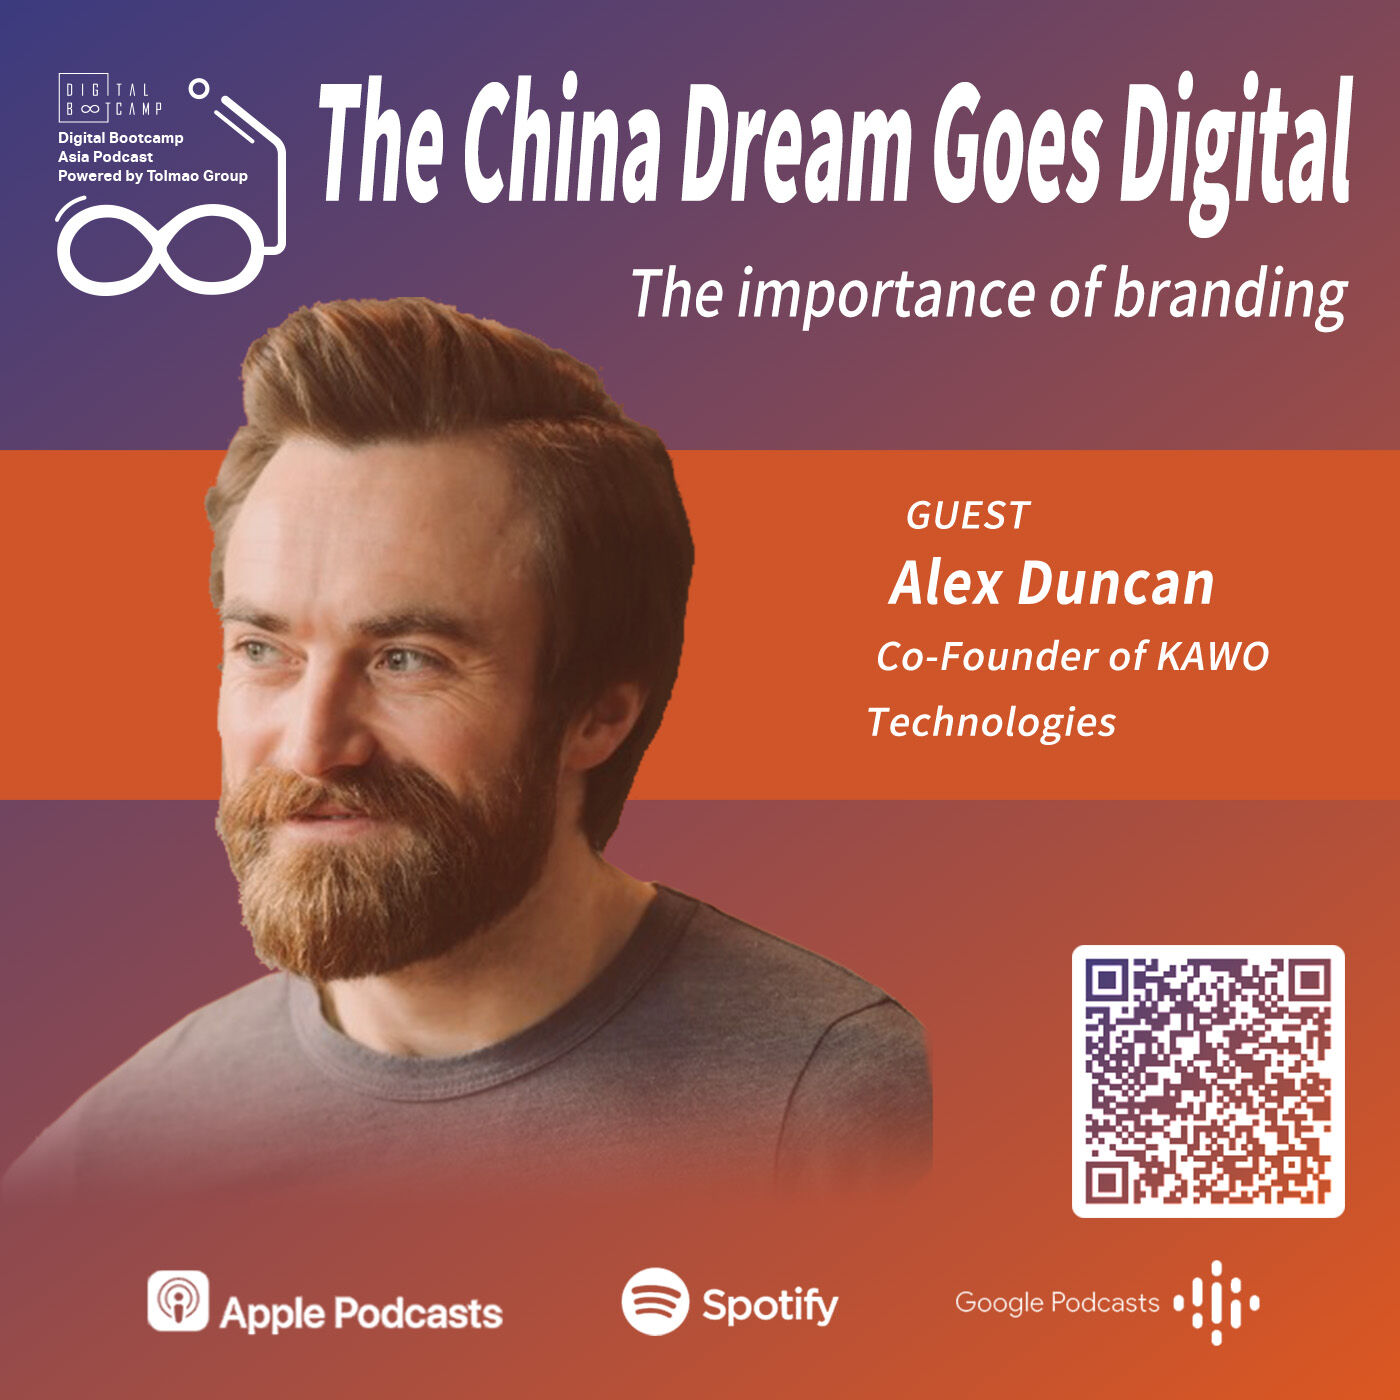 The China Dream Goes Digital with Alex Duncan, Co-Founder of KAWO Technologies